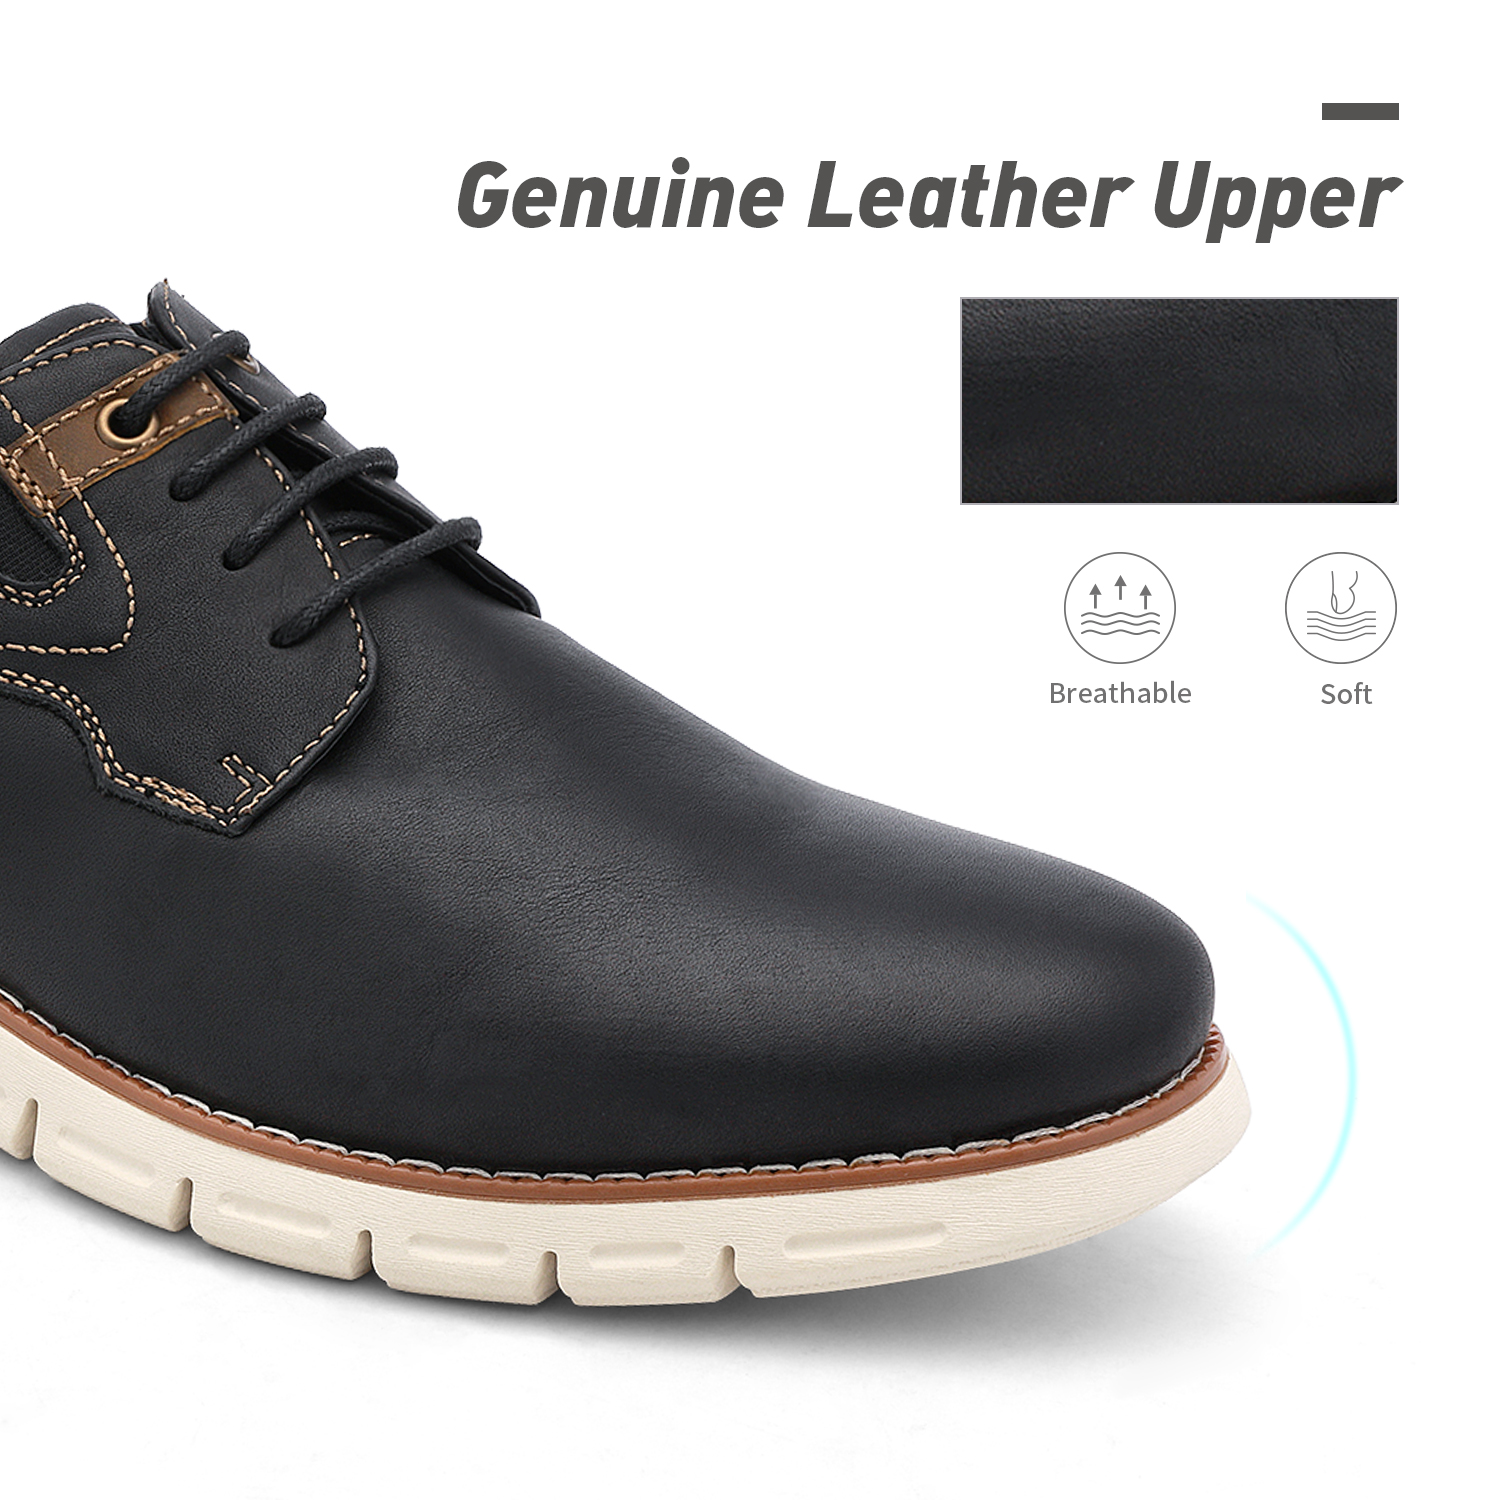 Men-s-Genuine-Leather-Casual-Formal-Sneakers-Lace-up-Business-Oxford-Dress-Shoes thumbnail 33